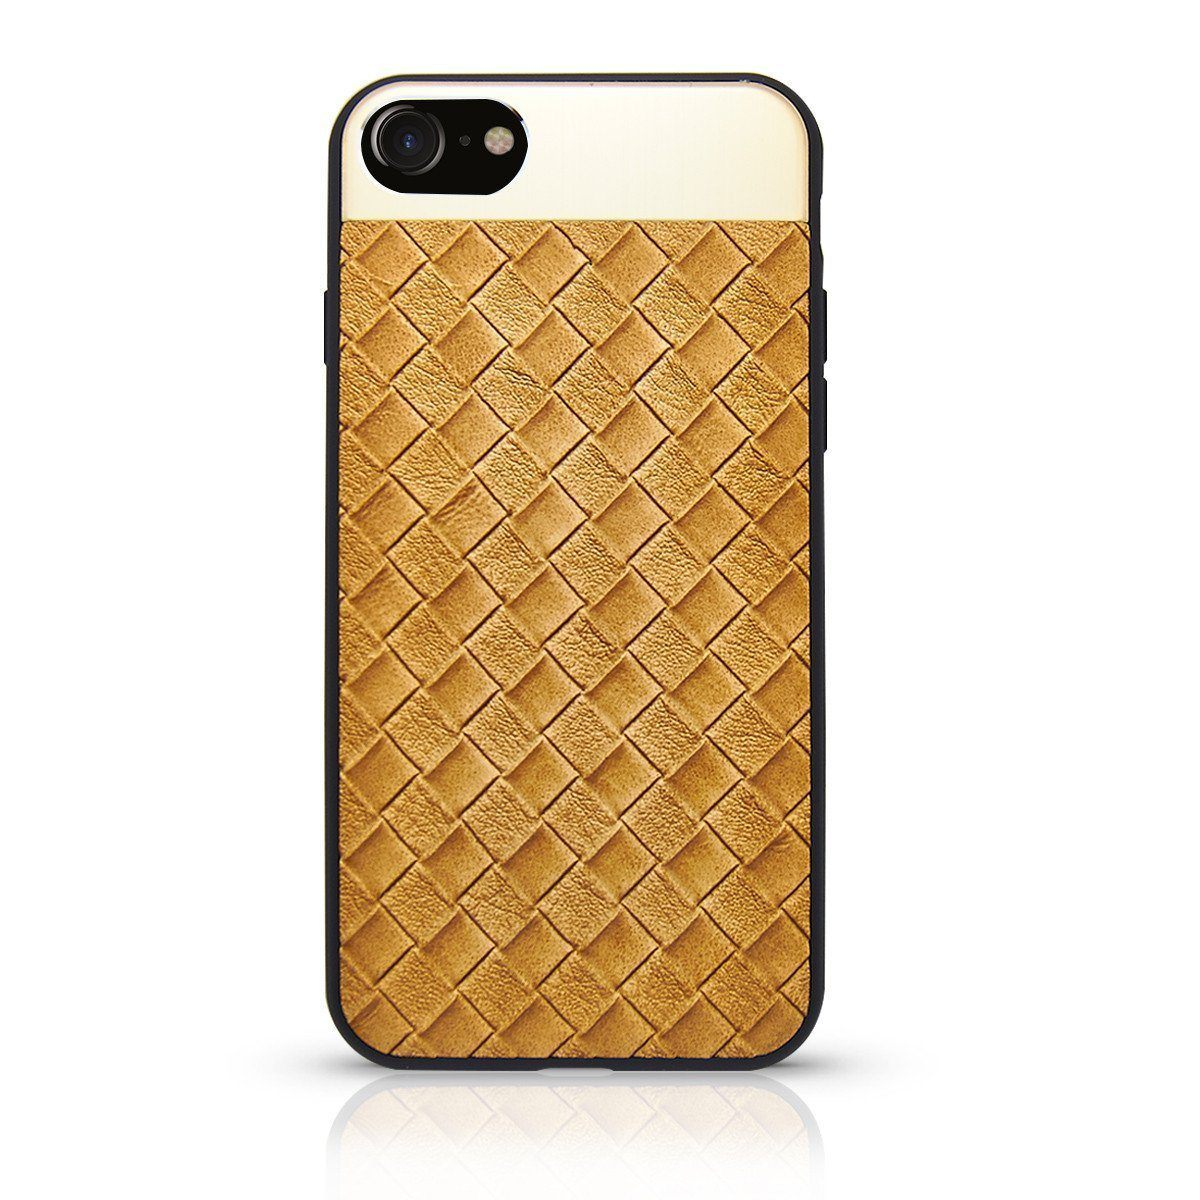 Viper Case for iPhone 6 - Camel